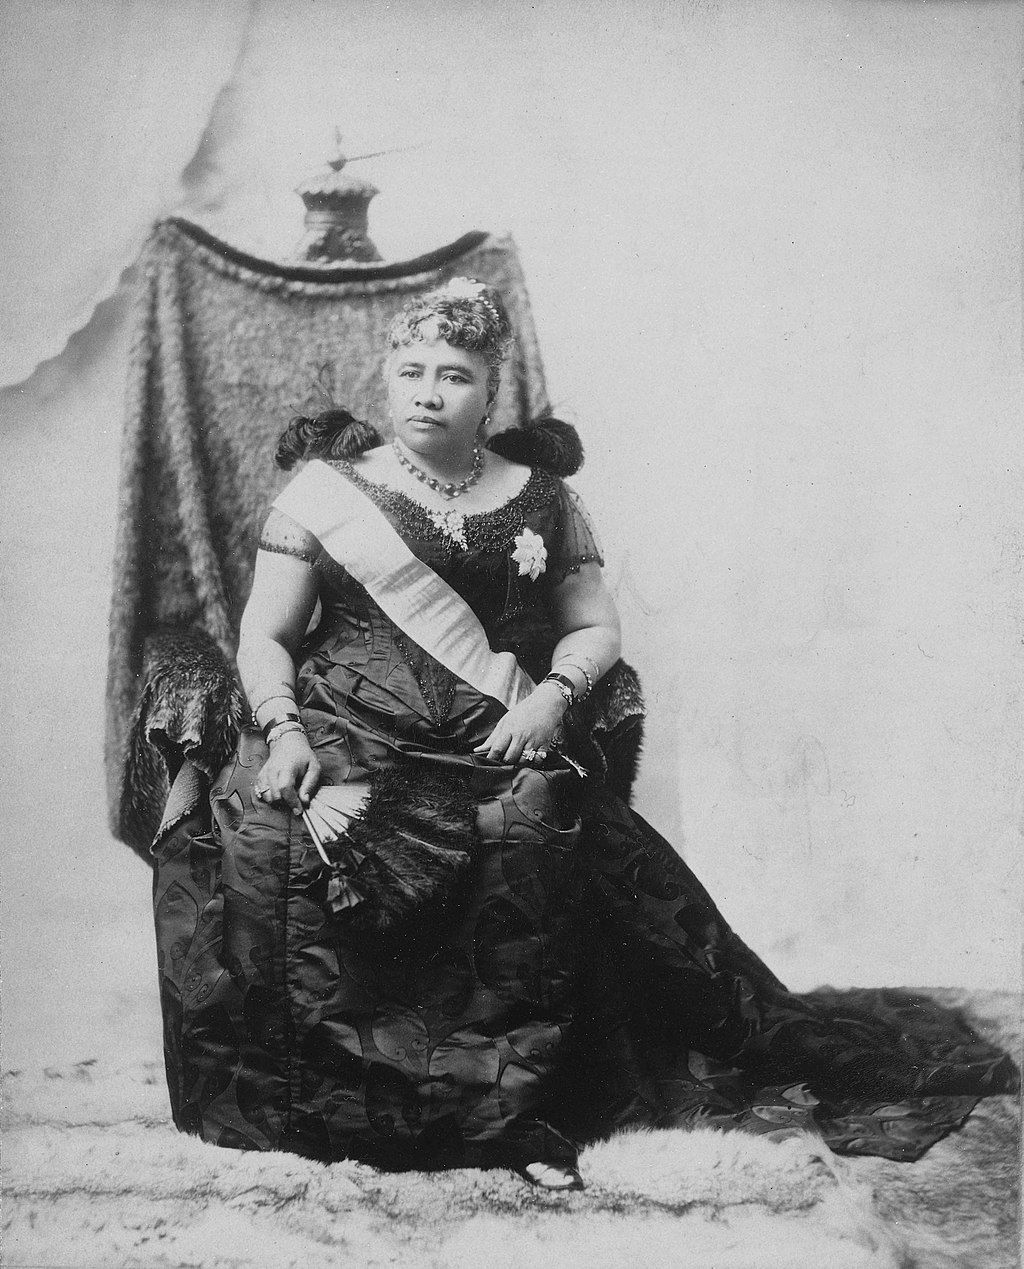 Five Things To Know About Liliuokalani, the Last Queen of Hawaii